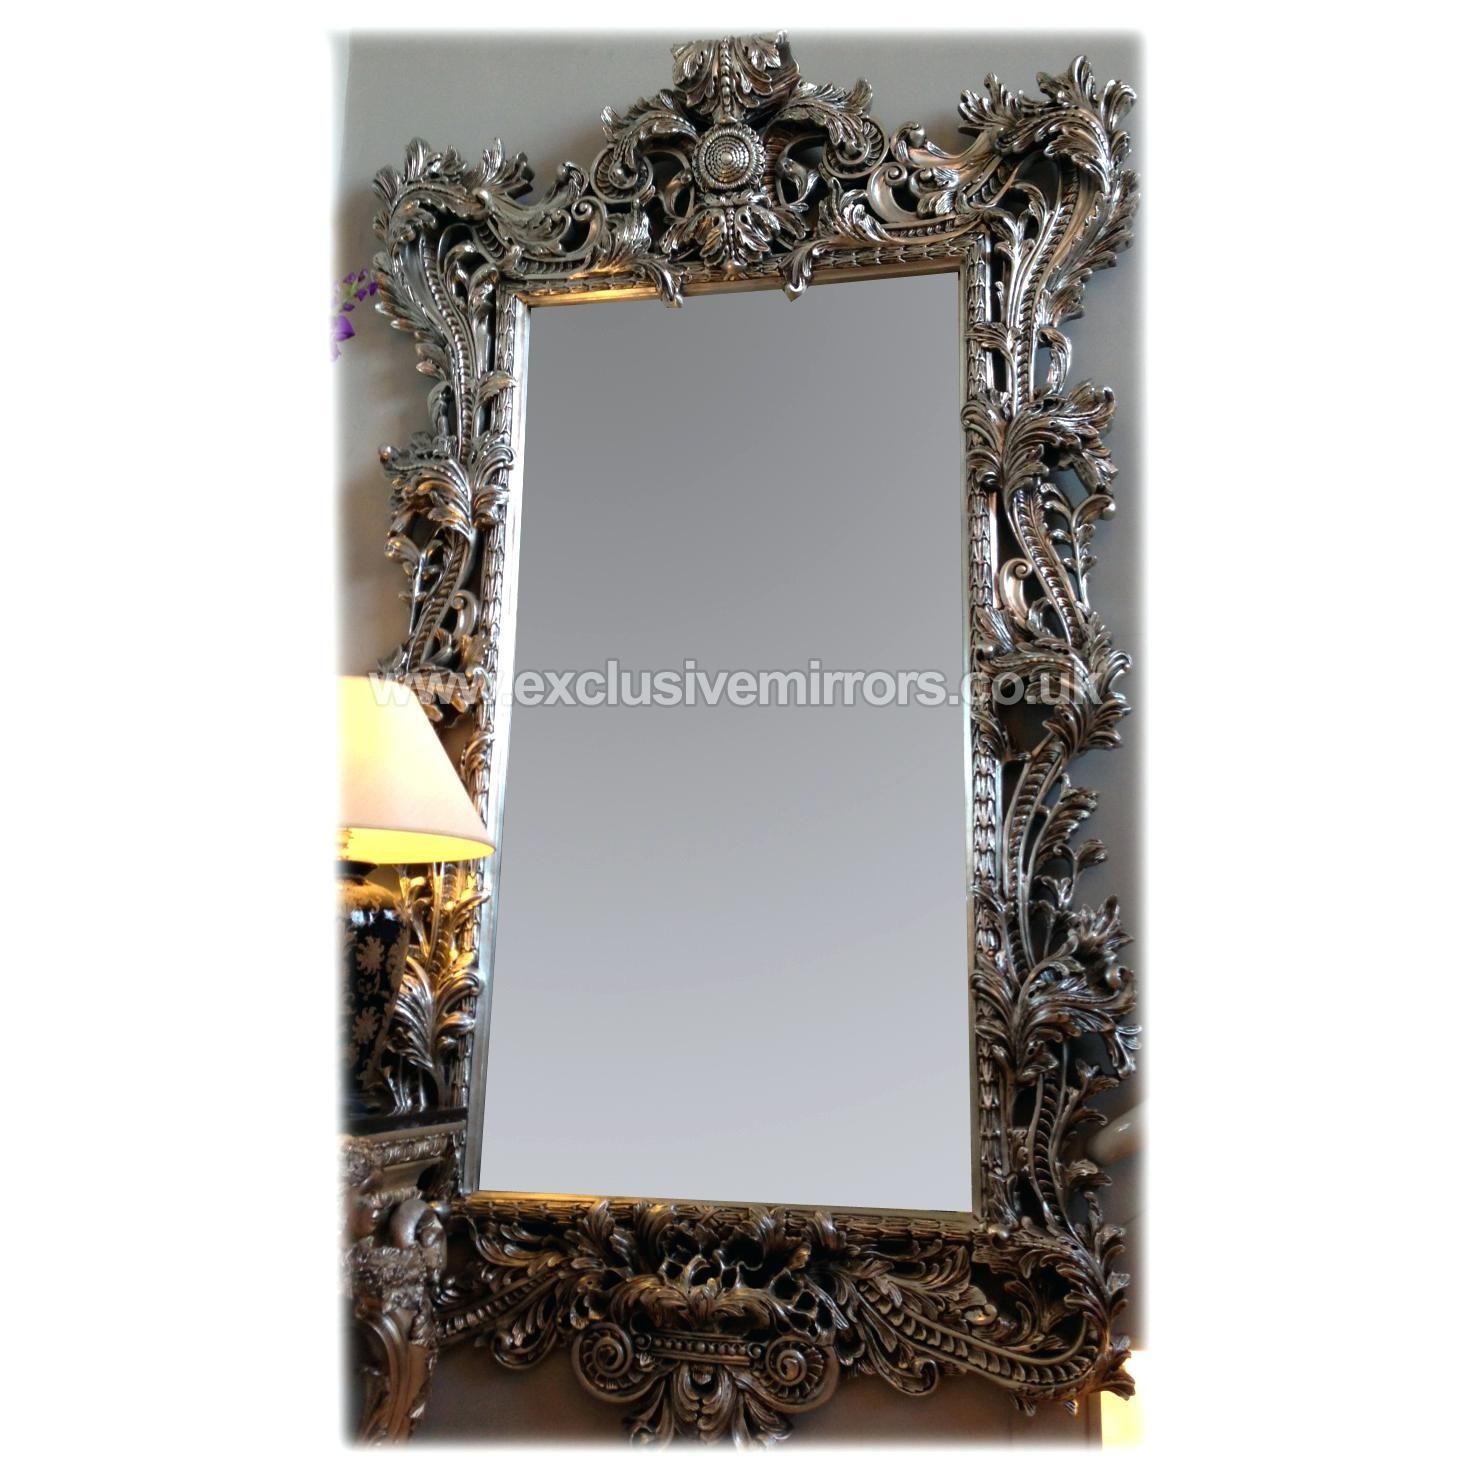 Silverbig Wall Mirror For Living Room Large Mirrors Sale Cheap Throughout Huge Mirrors For Sale (Image 18 of 20)